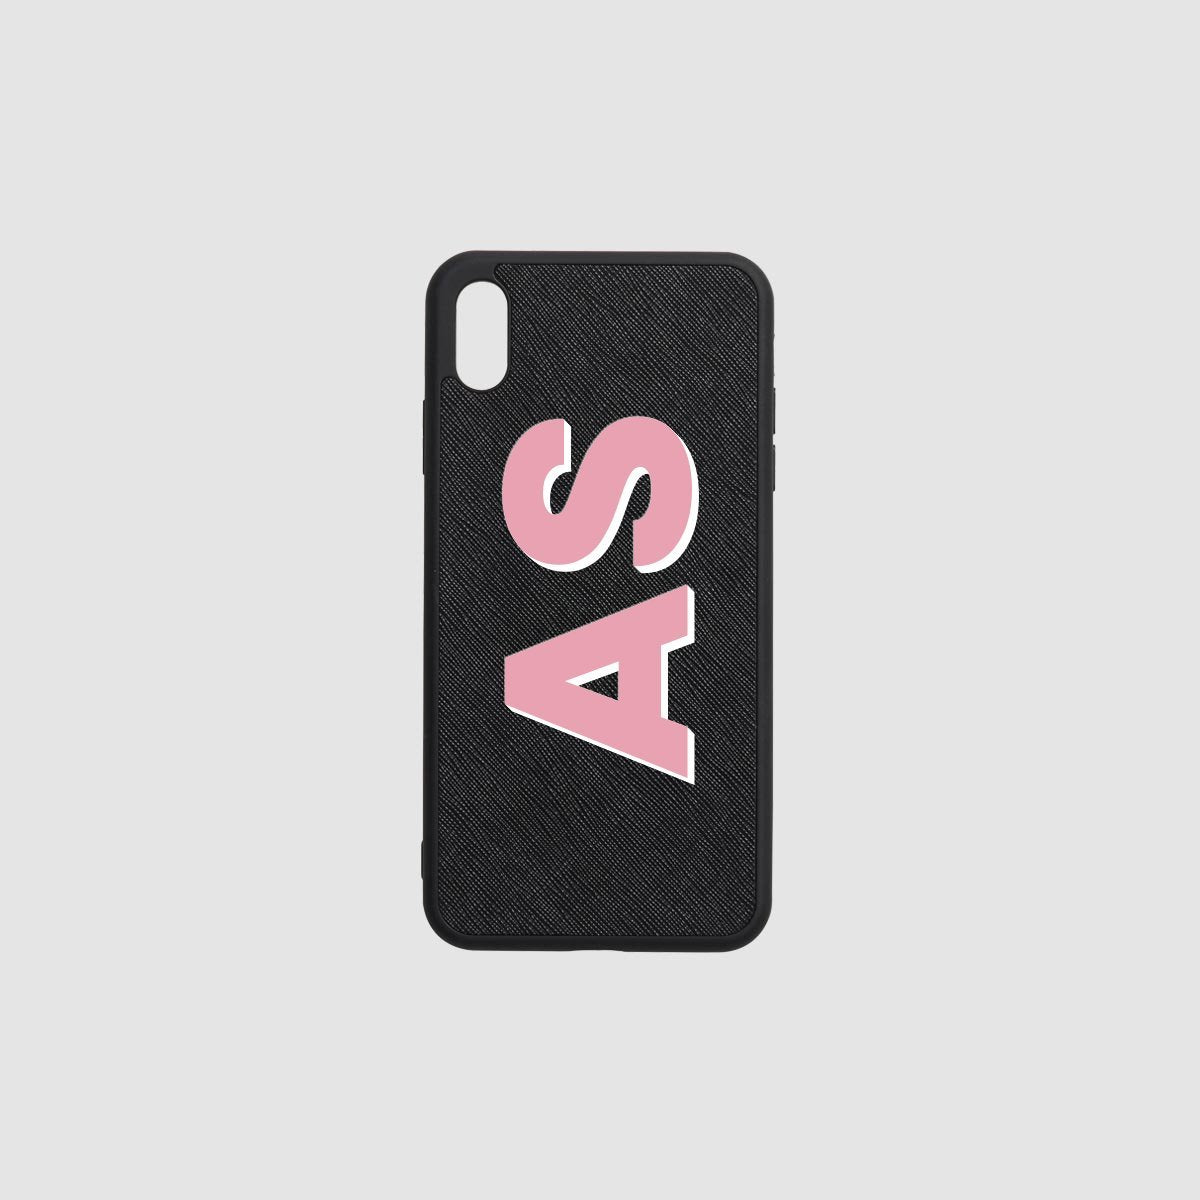 Shadow Text Personalised iPhone case- Black